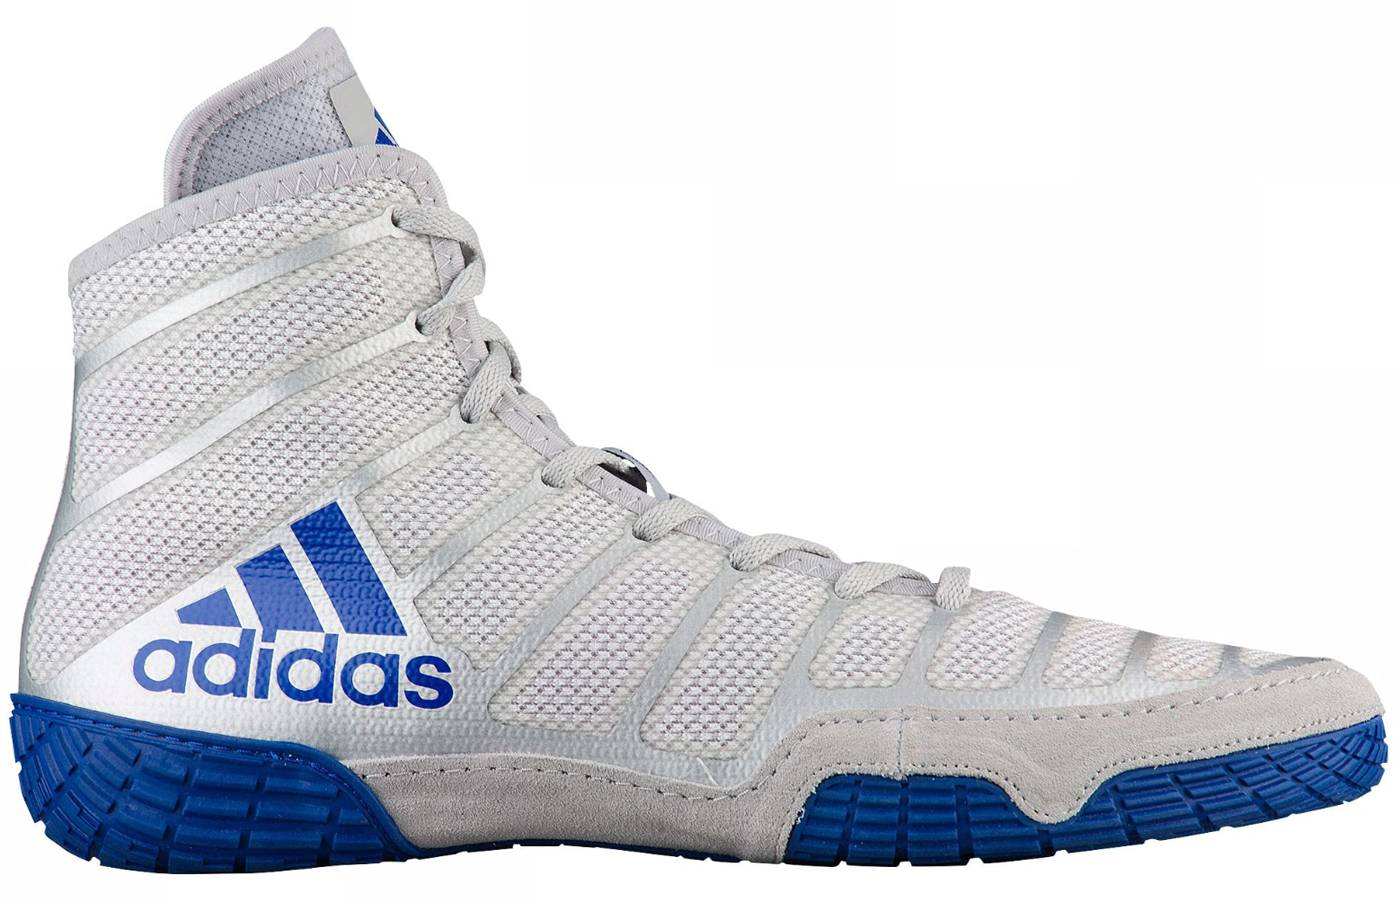 739e36e796 adidas-adizero-varner-mens-wrestling-shoes-clr_mainProductImage_FullSize.jpg